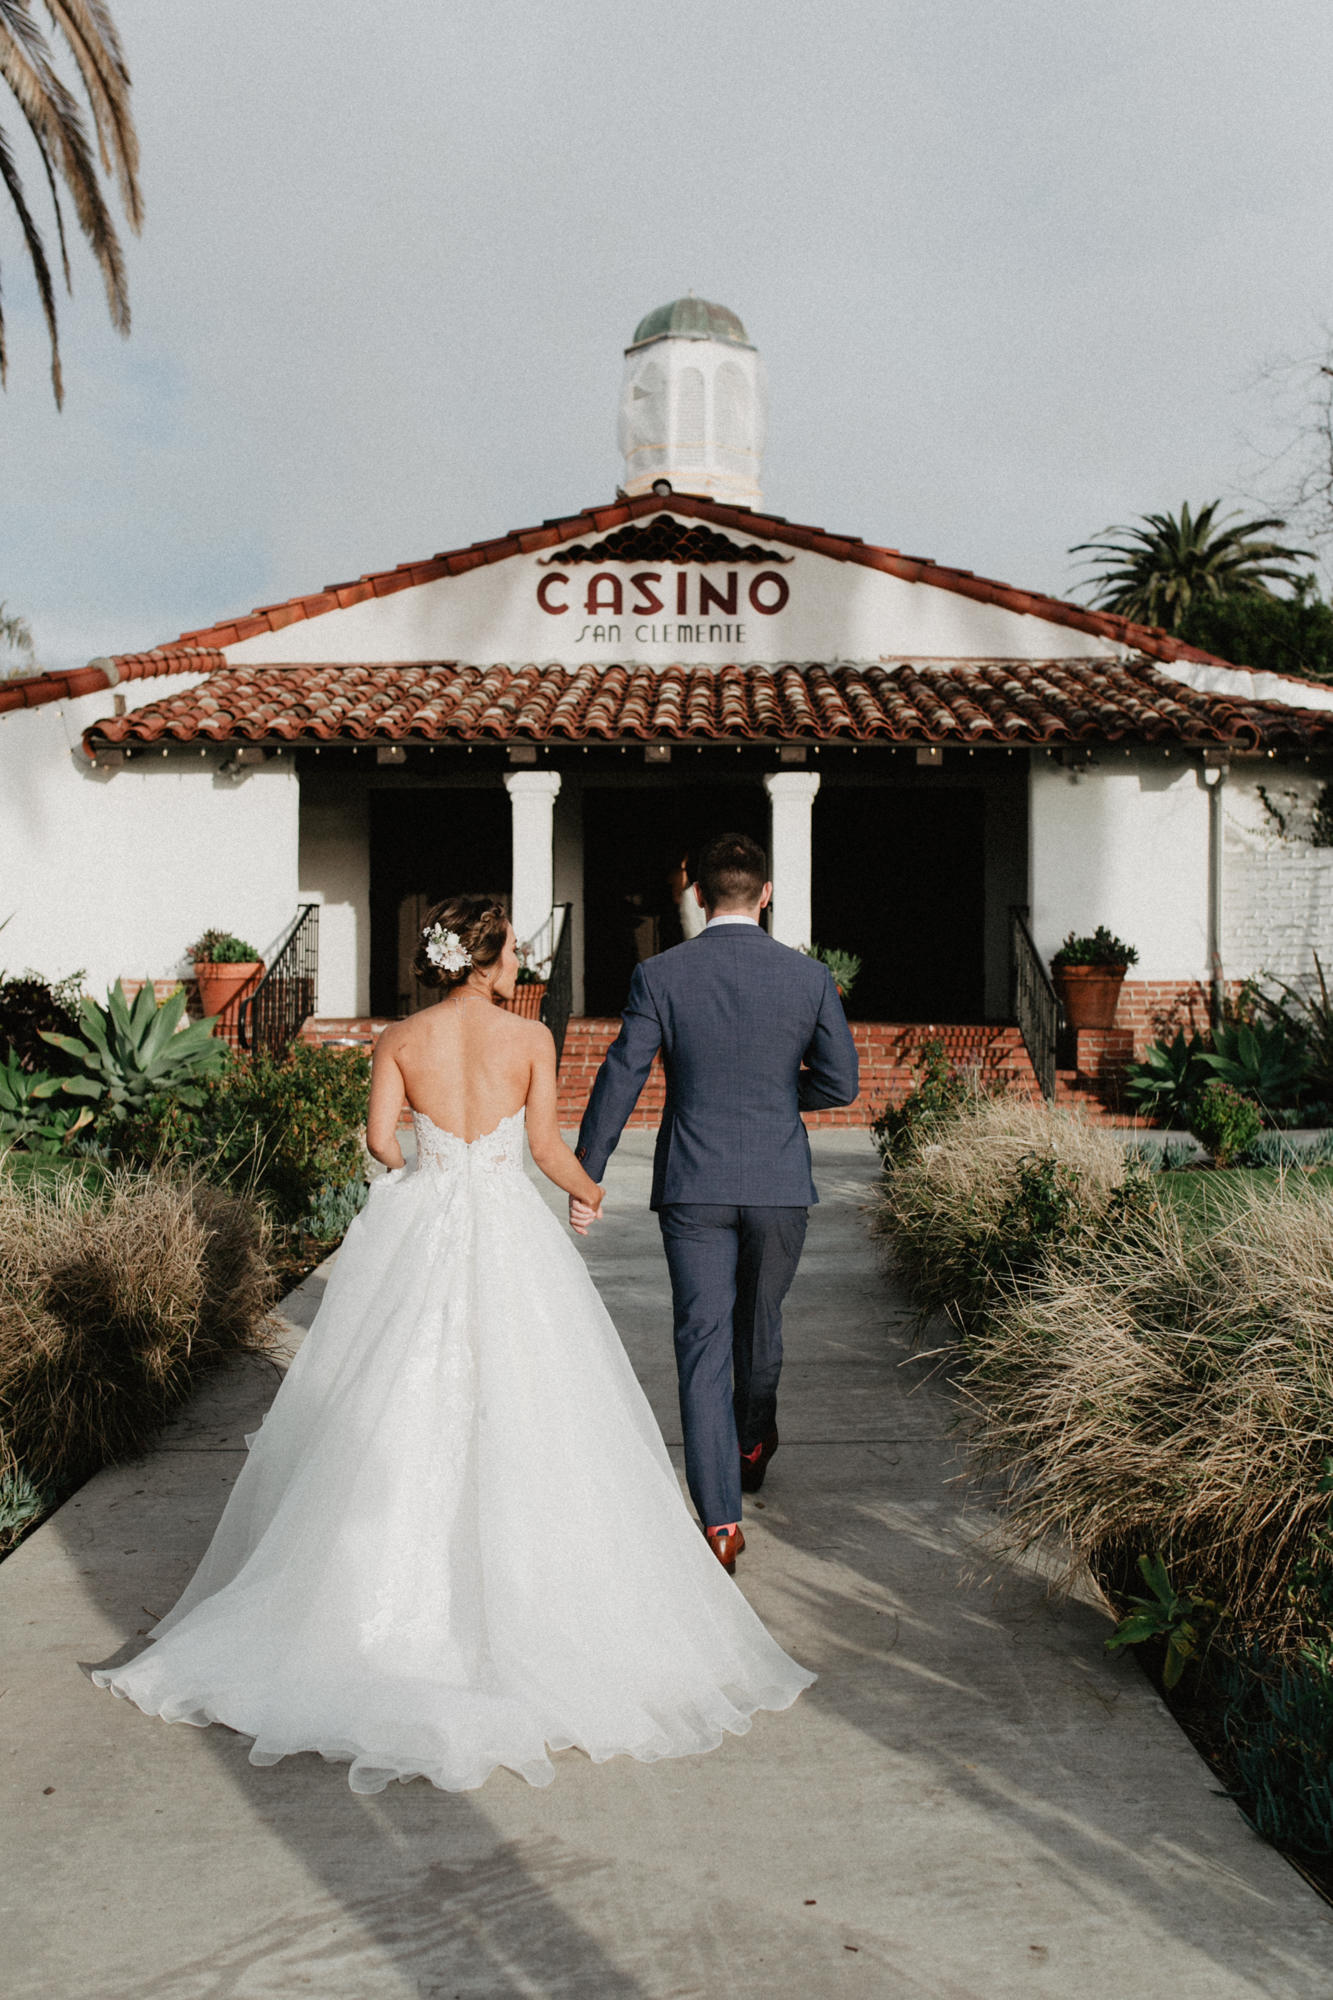 san clemente casino wedding photographer -67.jpg